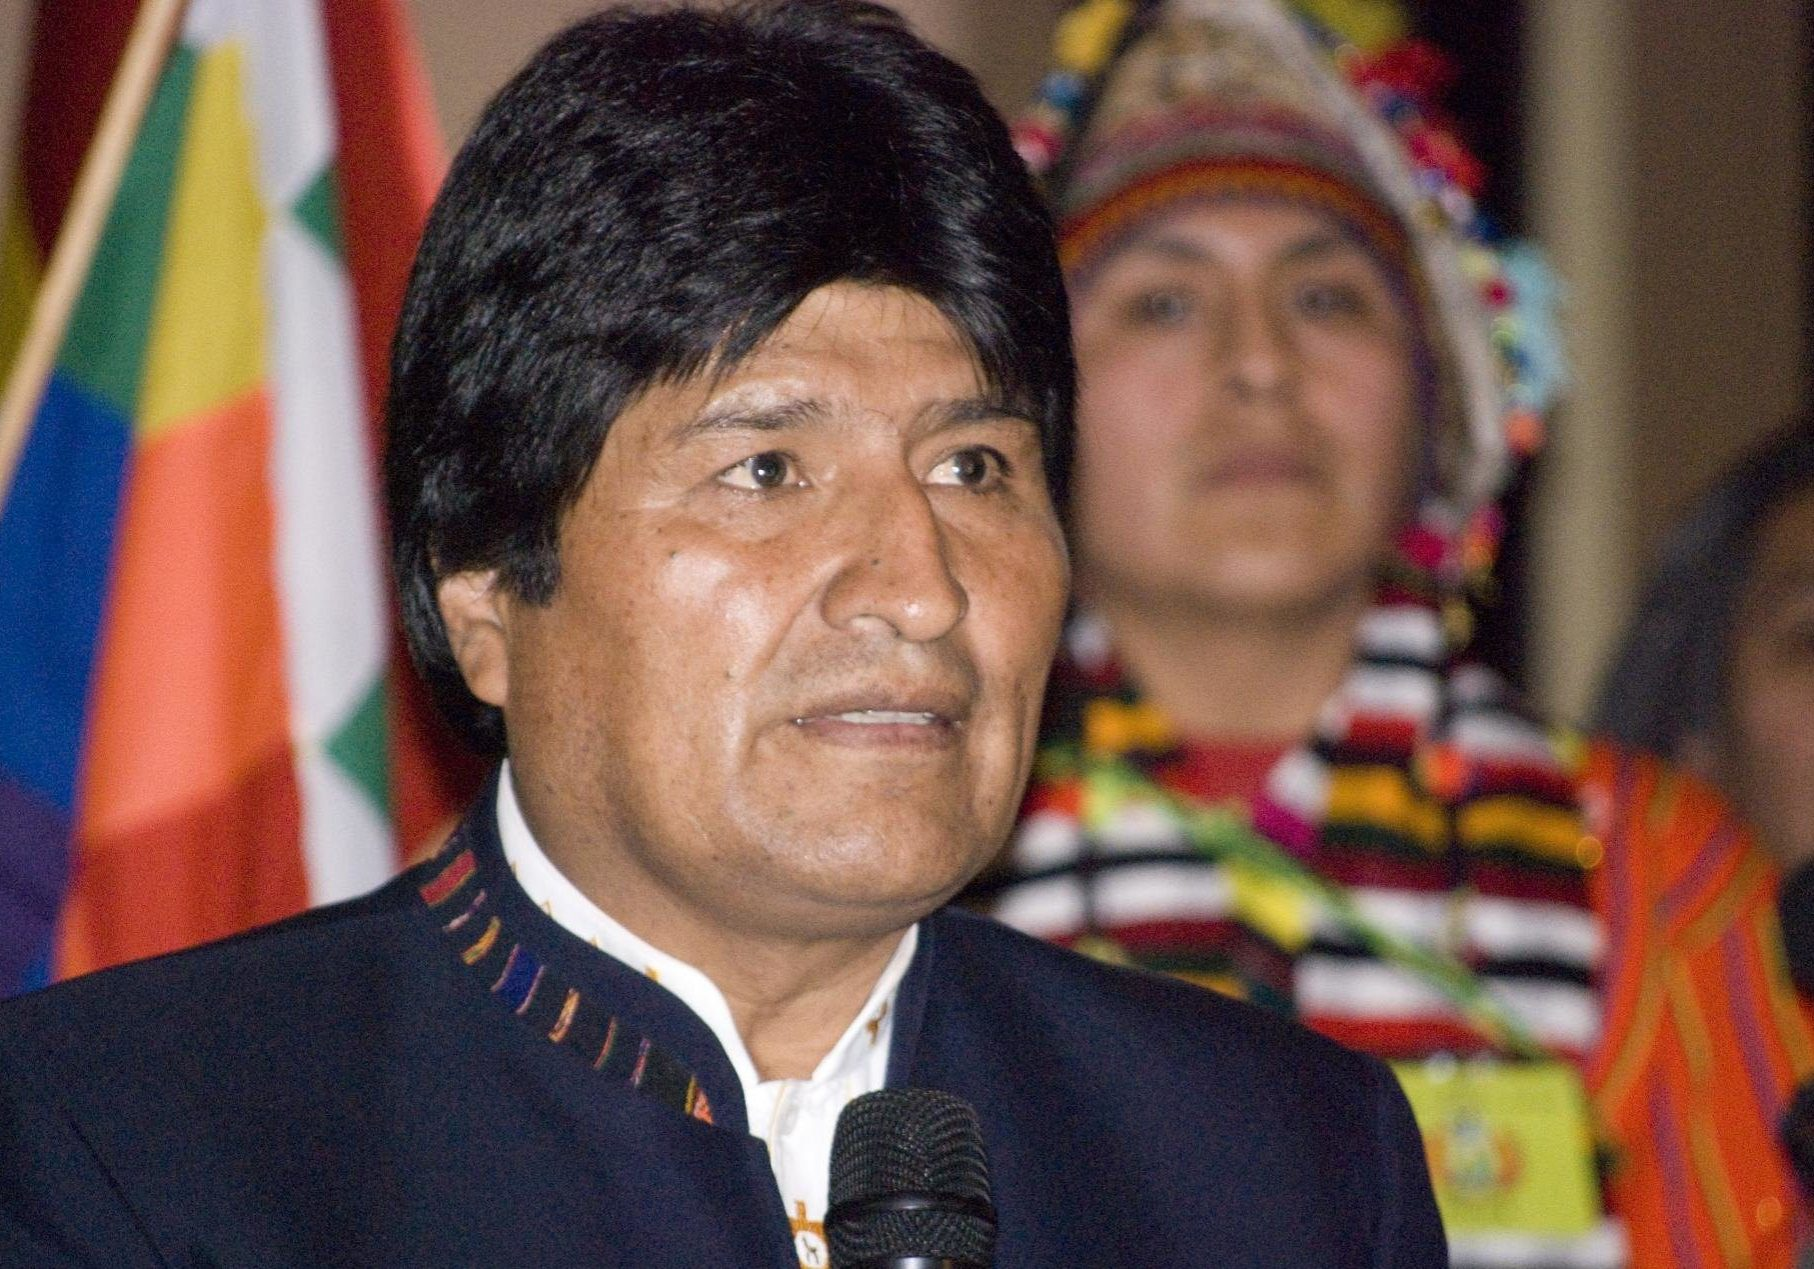 Bolivia's President Evo Morales, pictured here in 2009, has been accused of fraud in his bid to win an unprecedented fourth term. He has accused his opponents of plotting a coup. (Photo credit: 